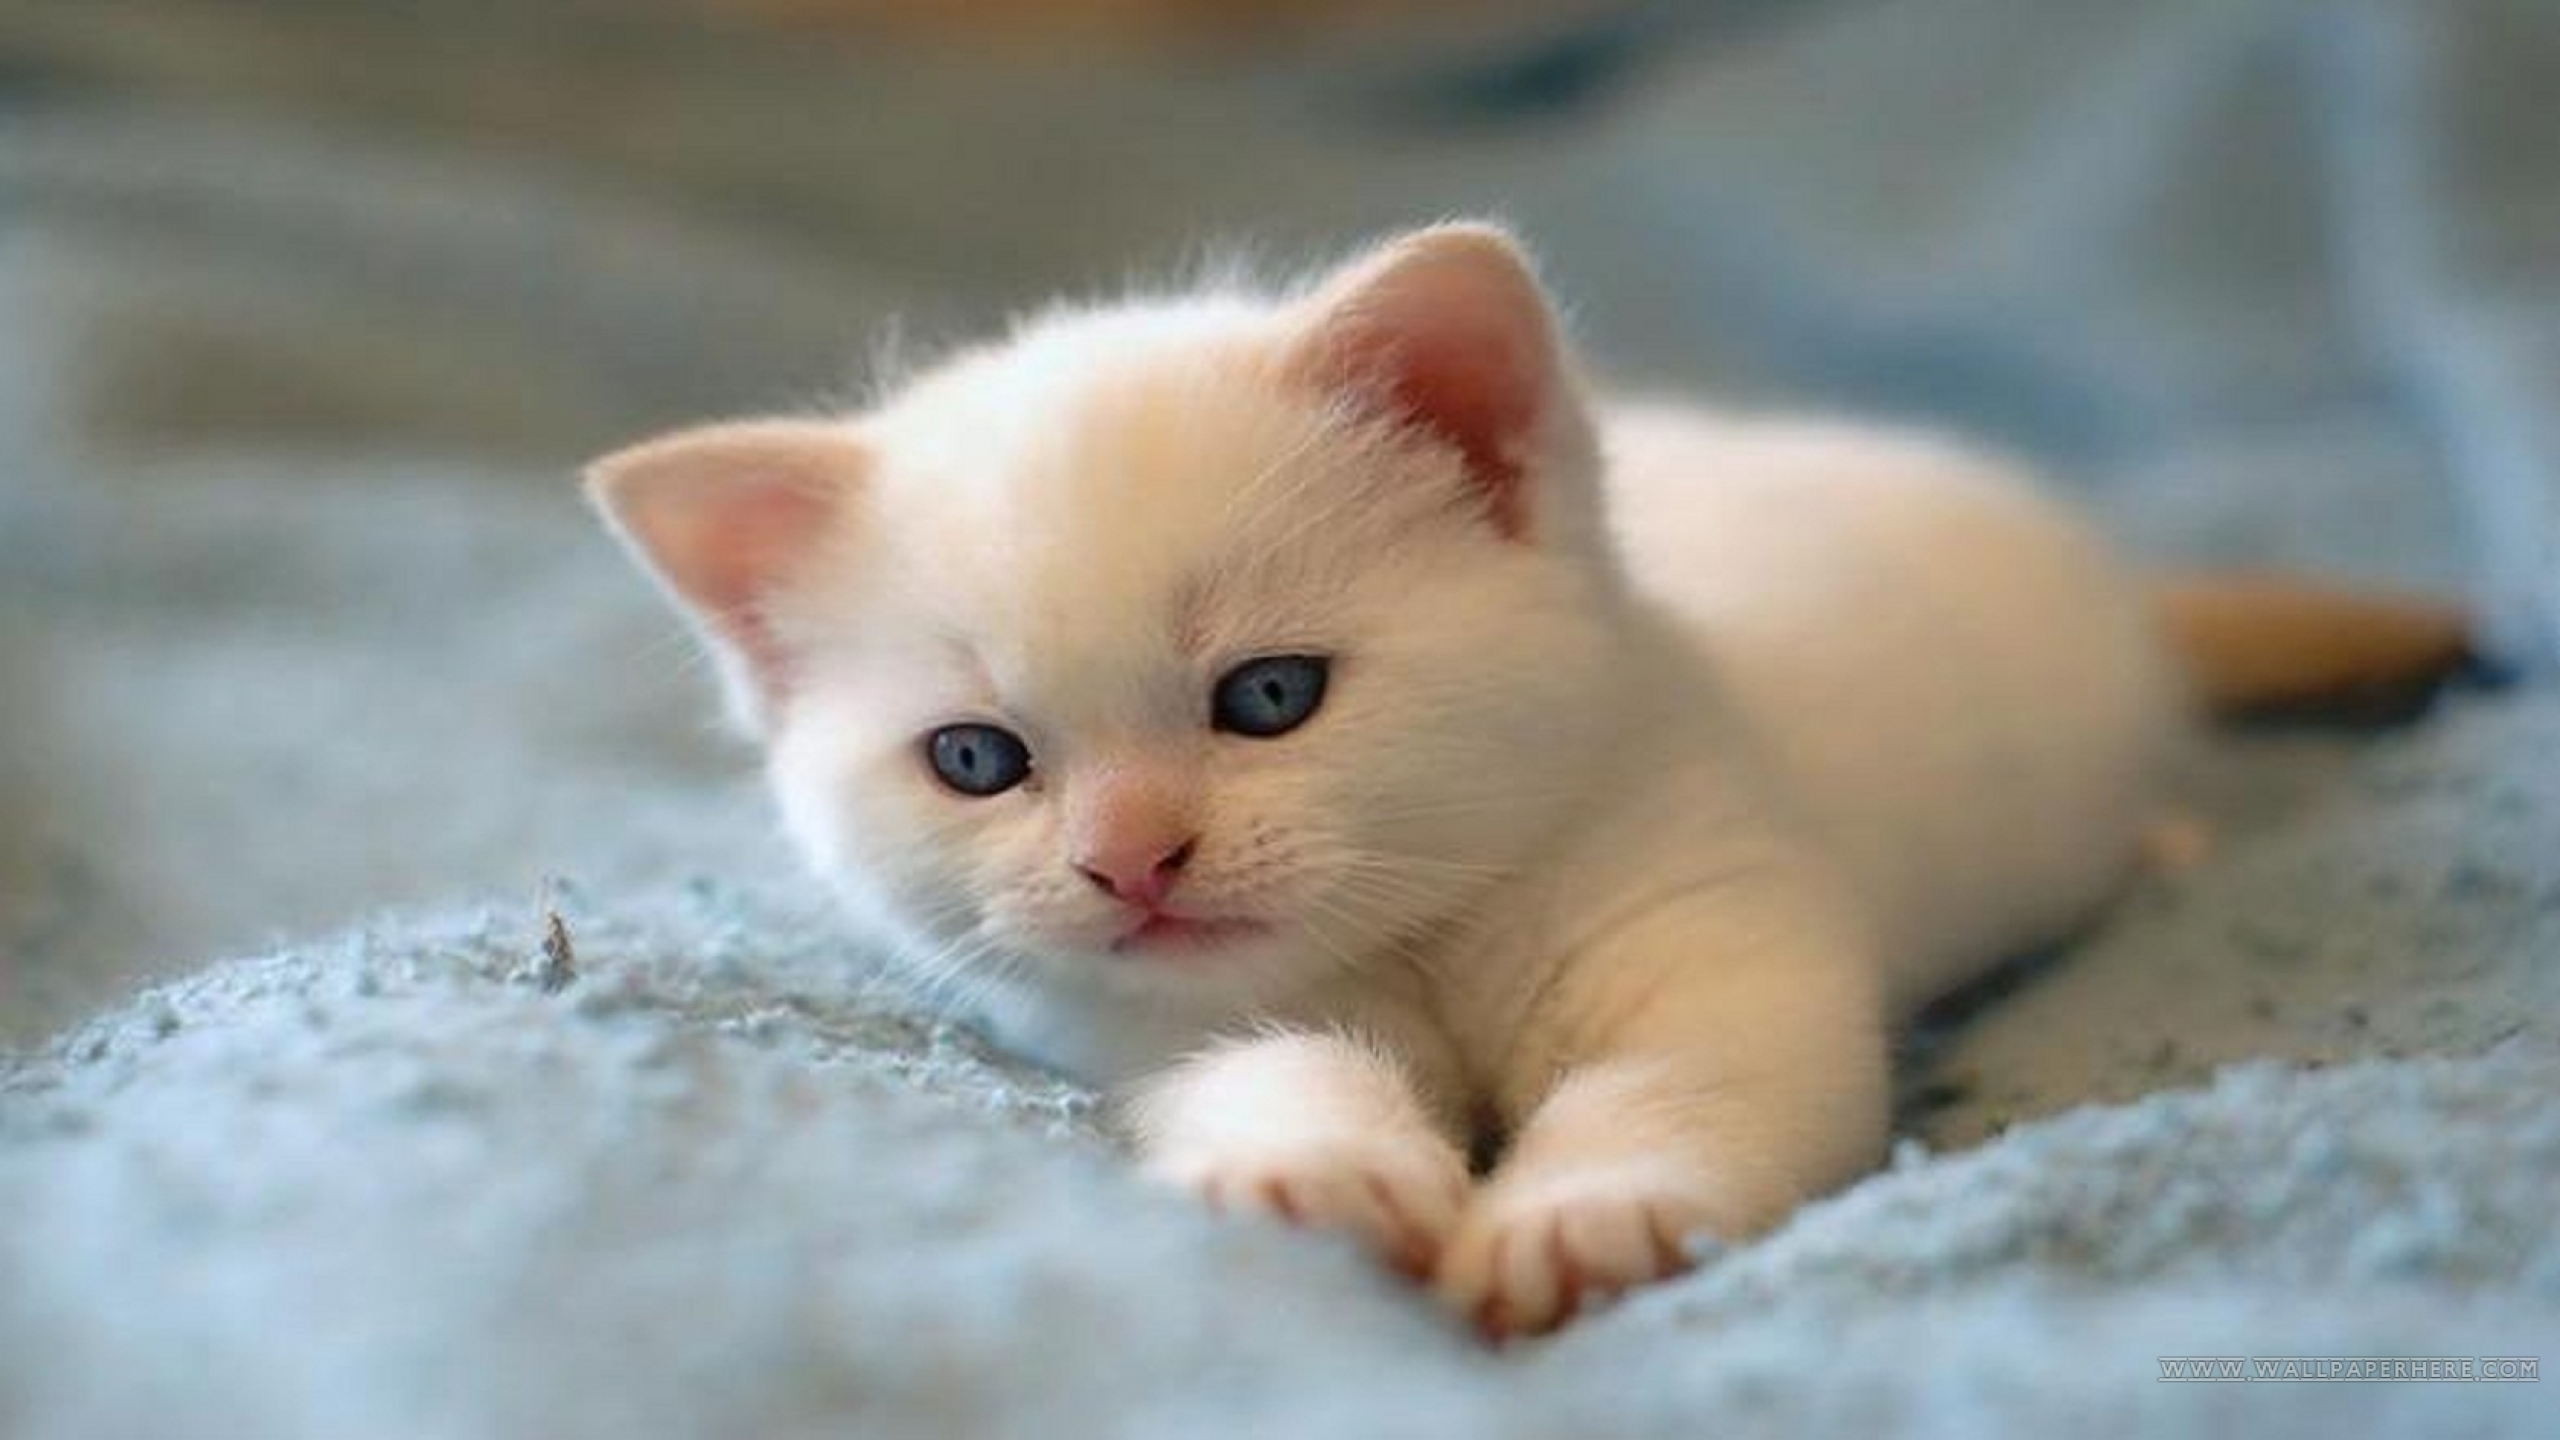 Cute White Kitten Wallpaper Photo Of Cat 2560x1440